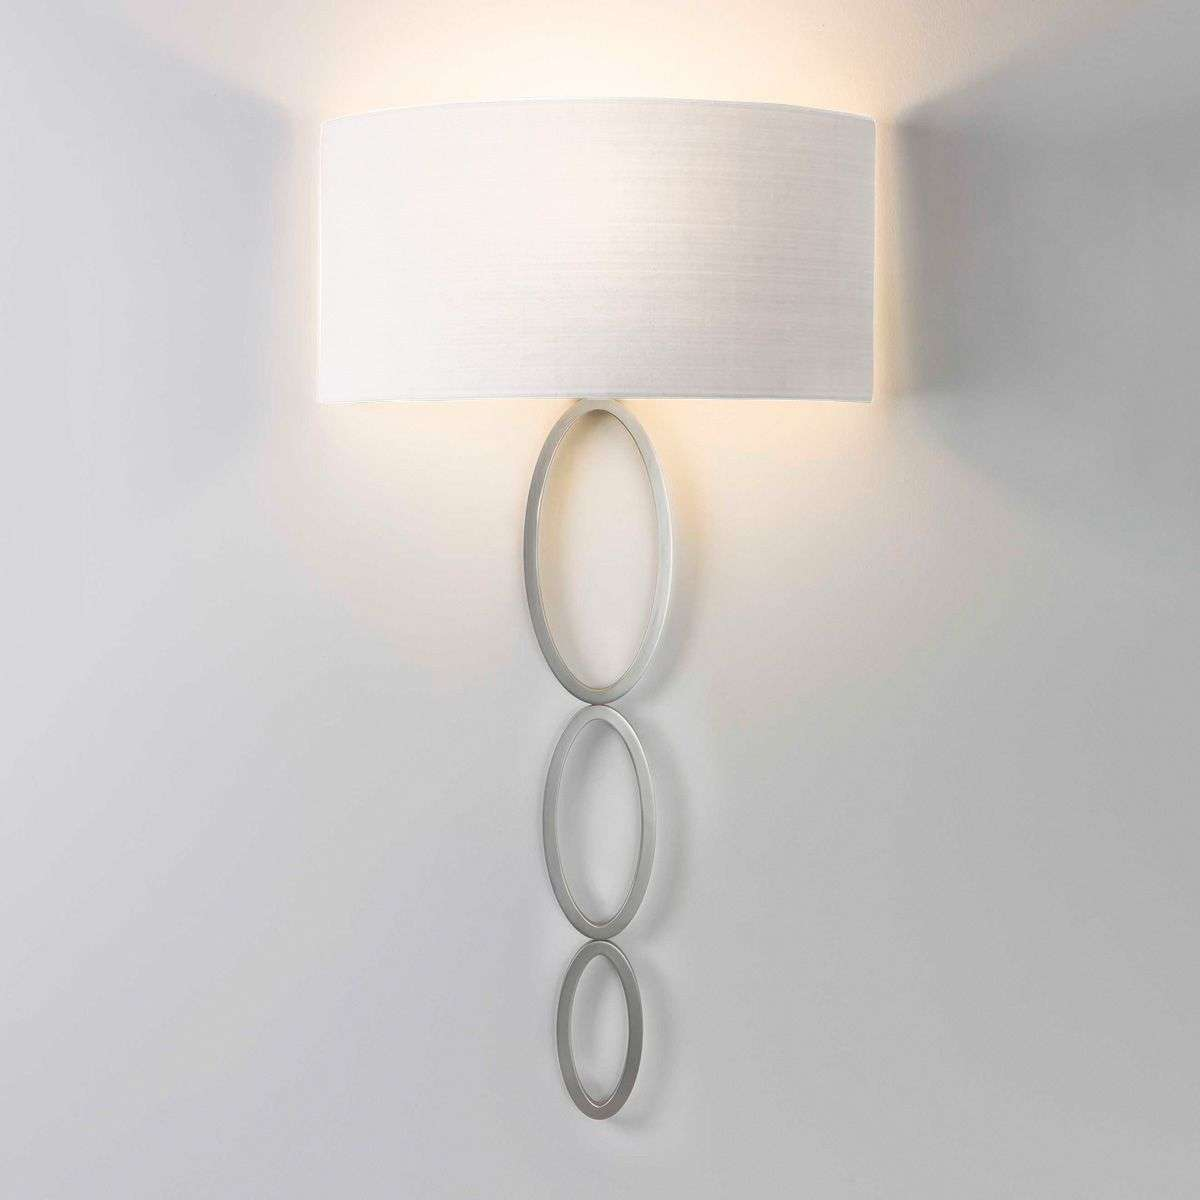 Wall light Valbonne with a white lampshade, nickel-1020513-31